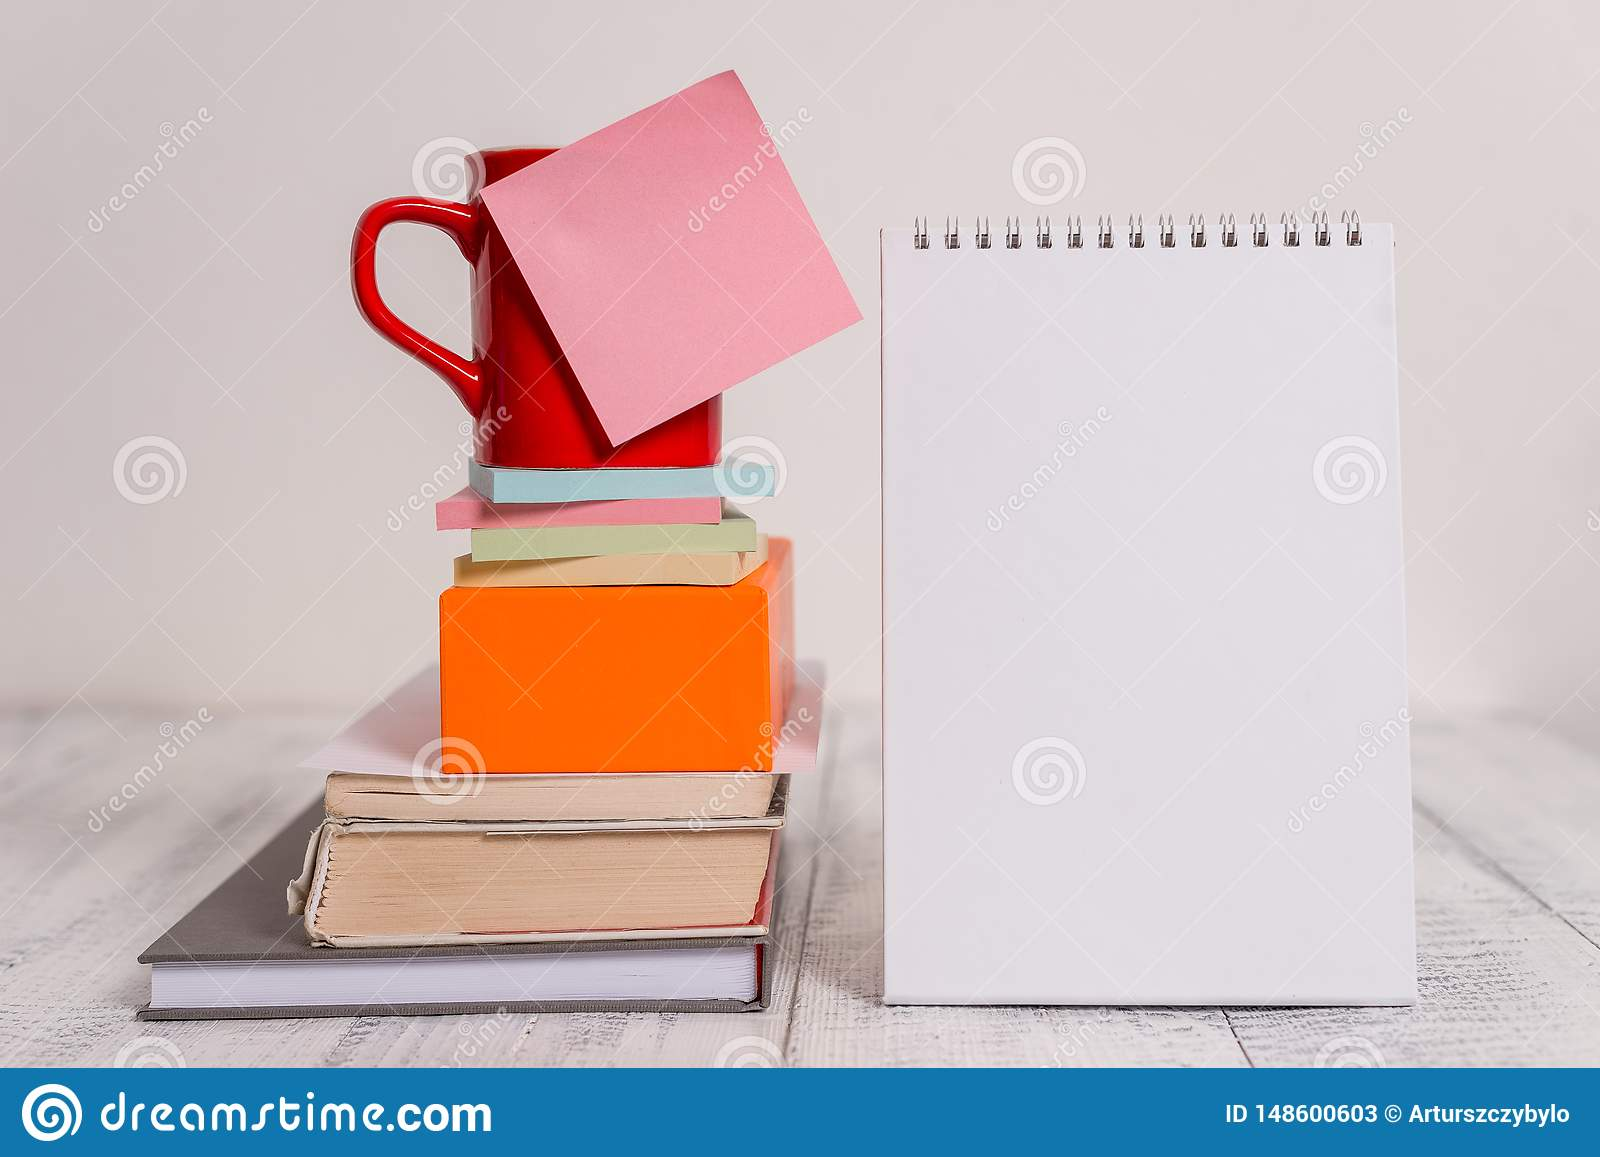 Cup blank colored sticky note stacked note pads books square box spiral lying retro vintage rustic old table background